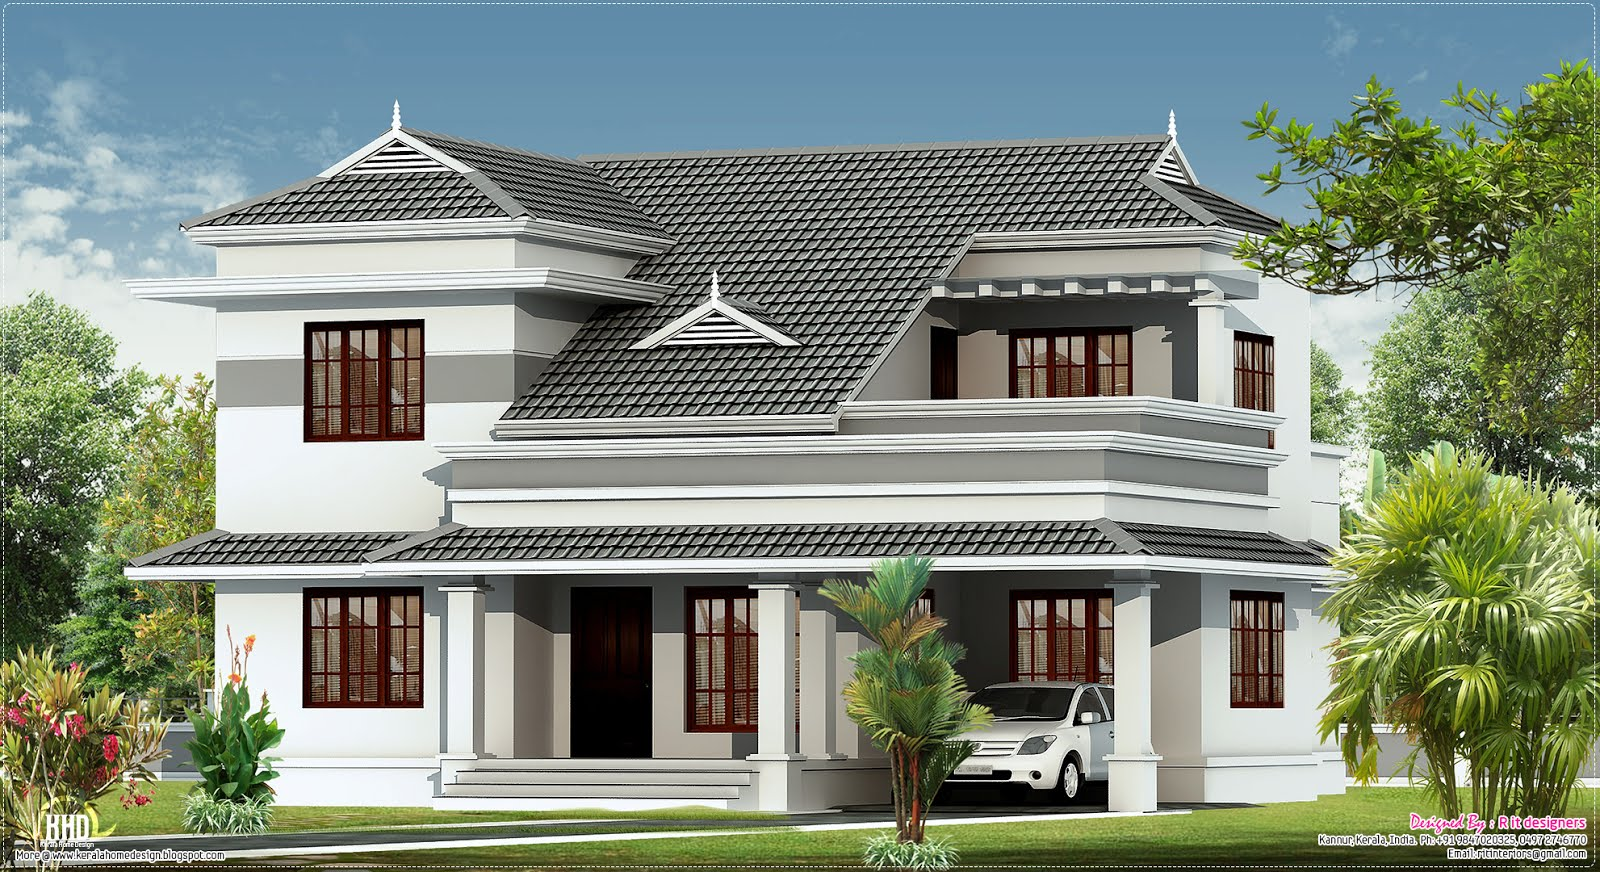 New Villa Design In 2250 Kerala Home Design And